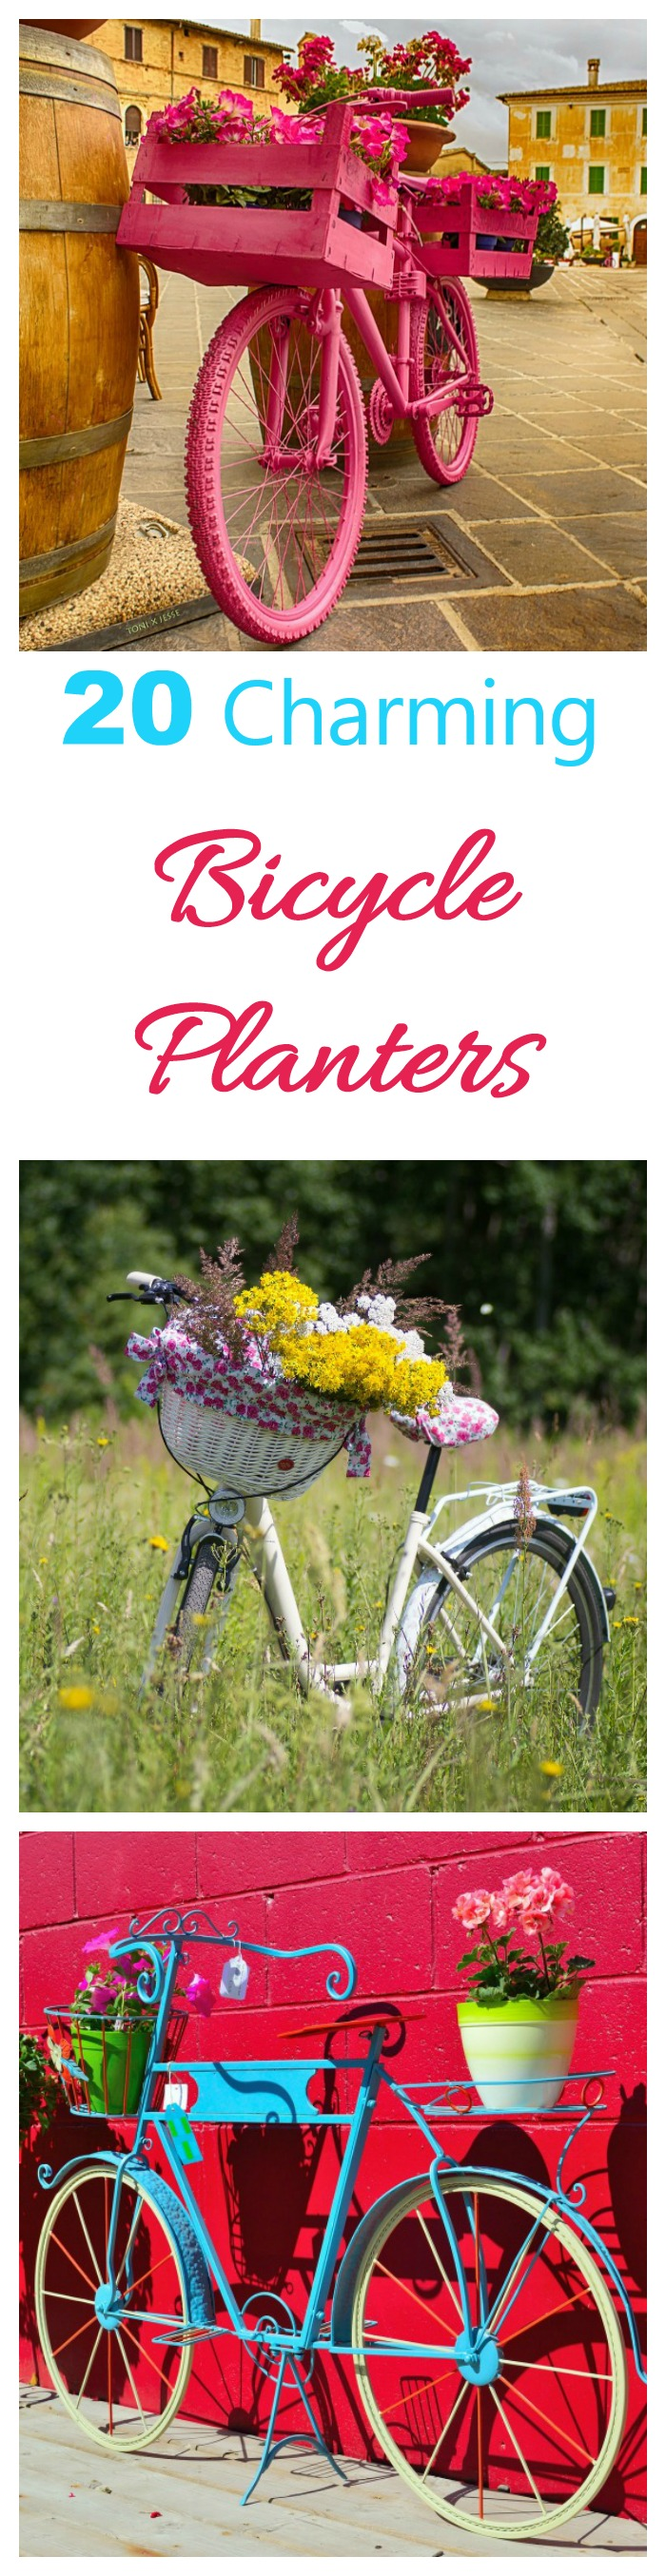 These 20 bicycle planters will add a whimsical look to your garden centers. Get some inspiration for your project here.